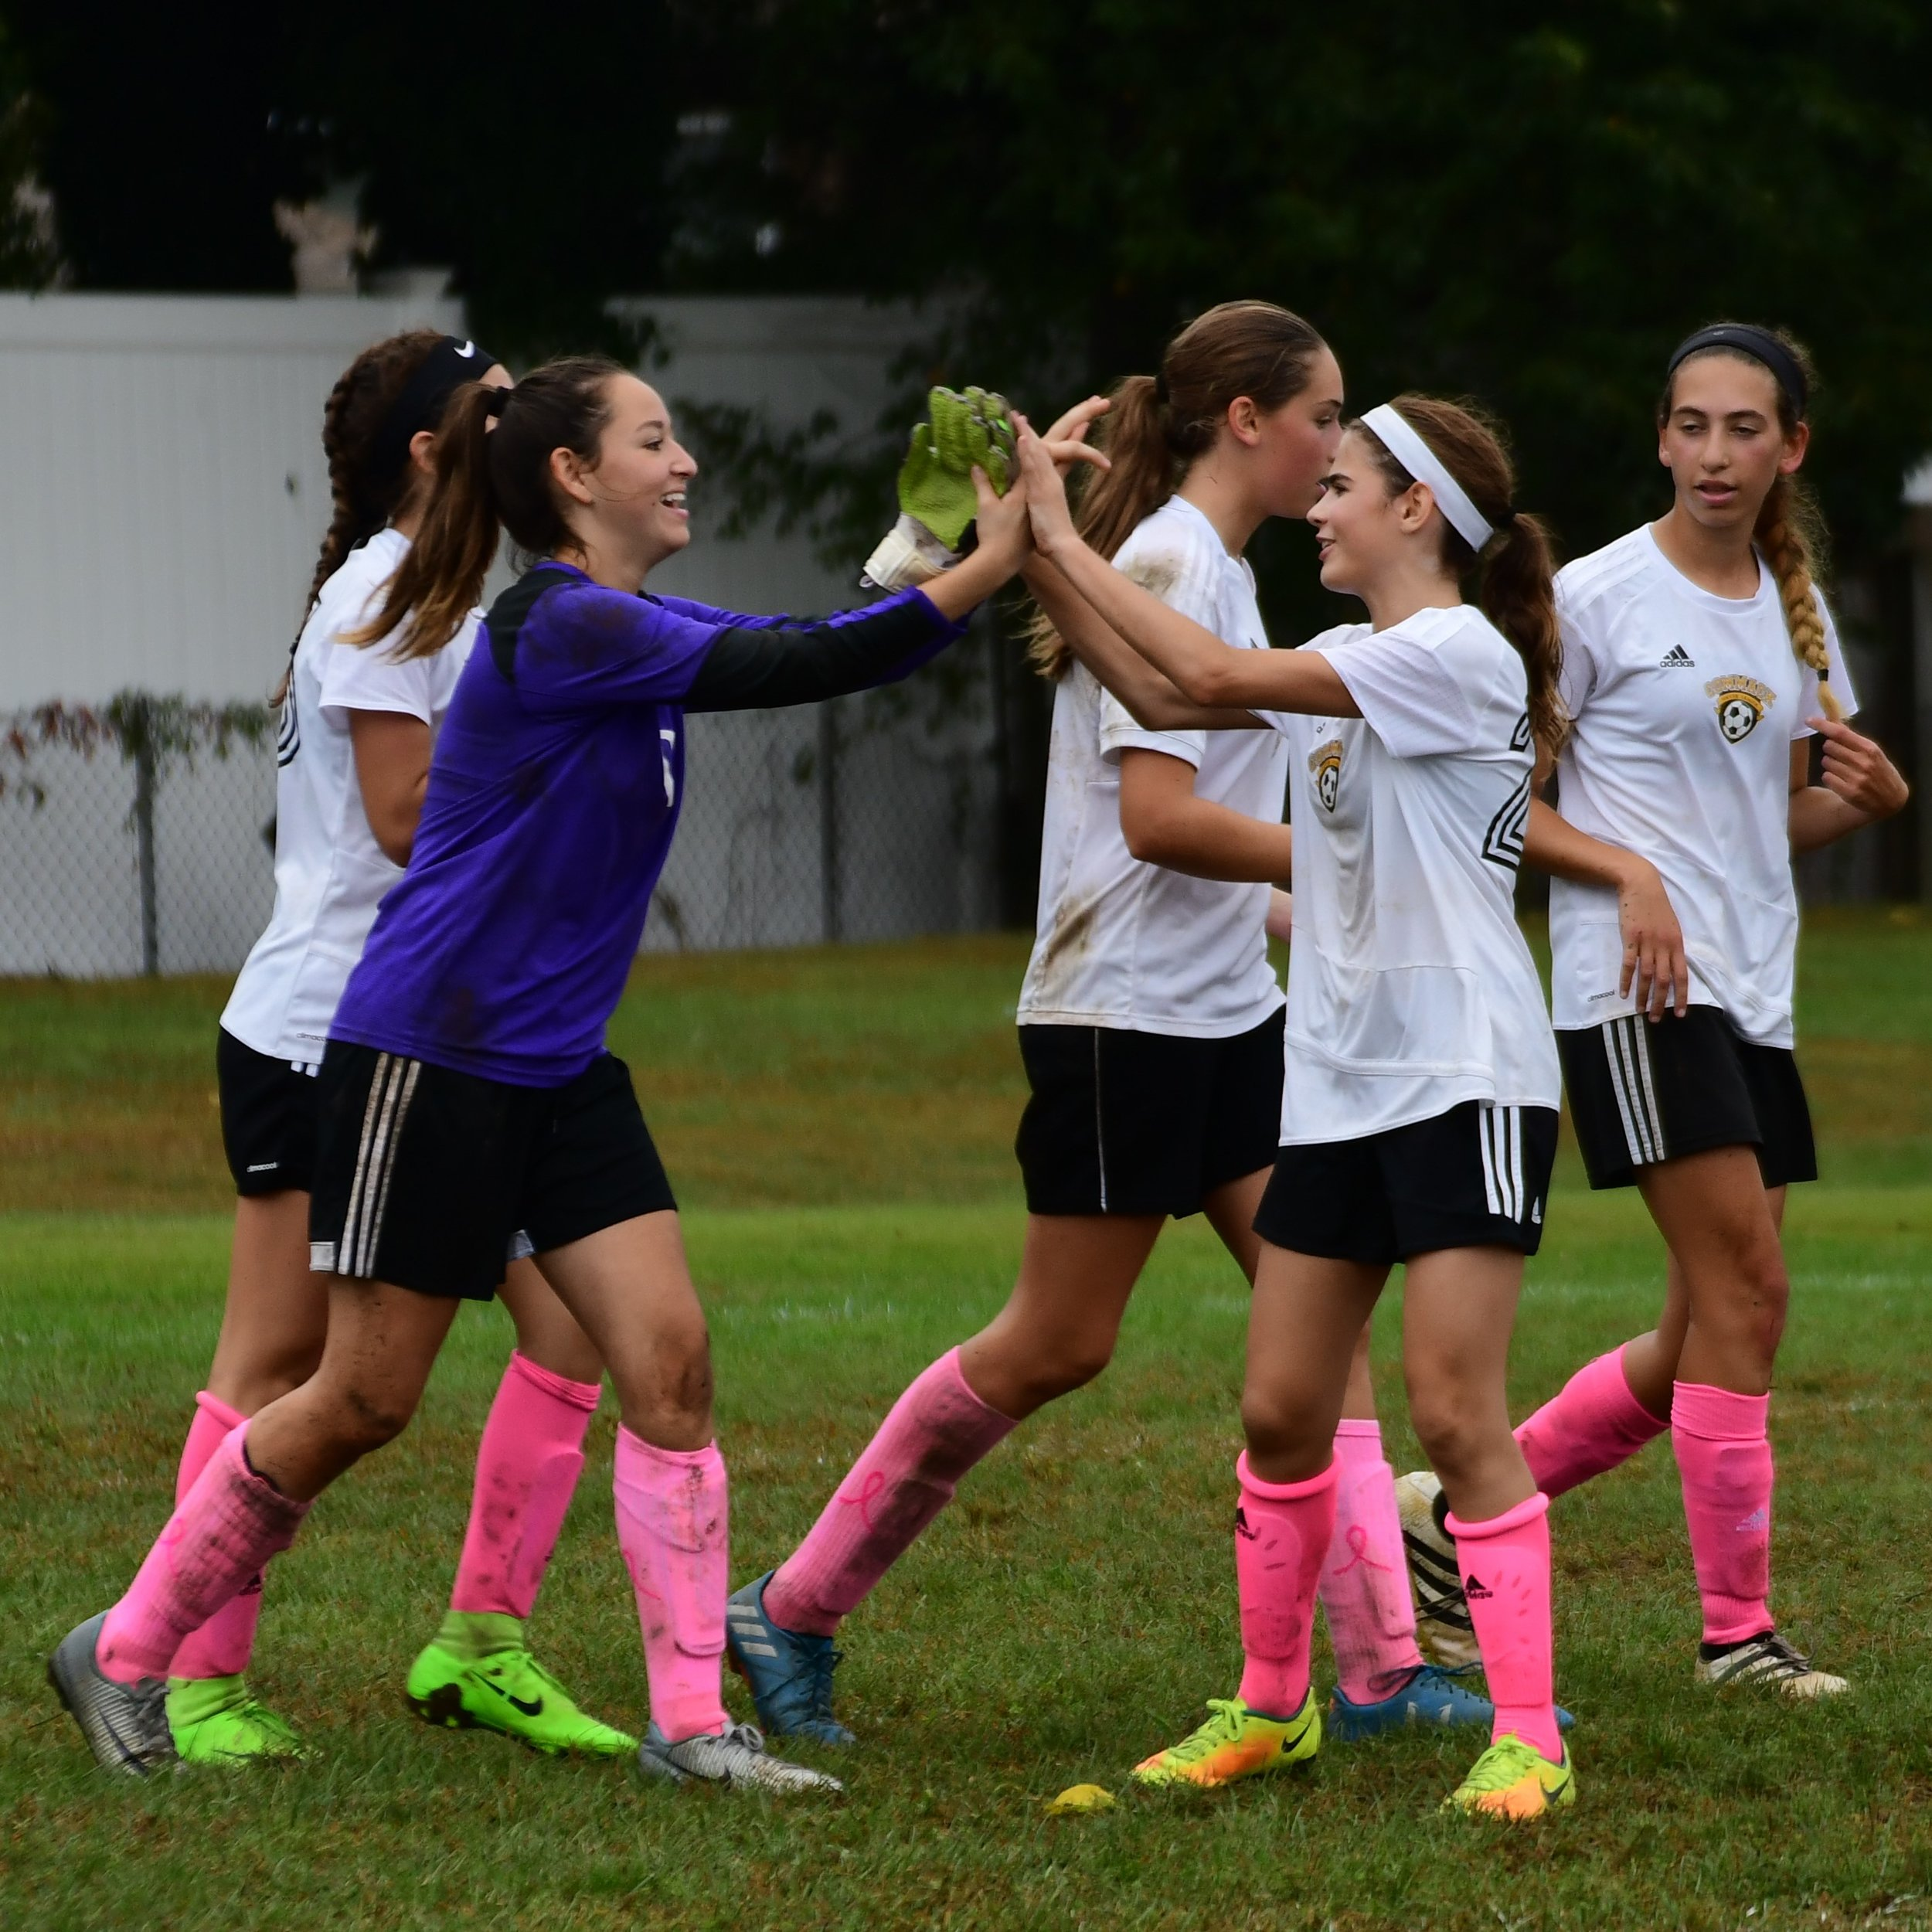 Wear Pink - October is Breast Cancer Awareness month. In support of such a great cause, the Commack Soccer League is selling pink socks in the concession stand at Burr for the entire month of October. We are asking everyone, both boys and girls, to